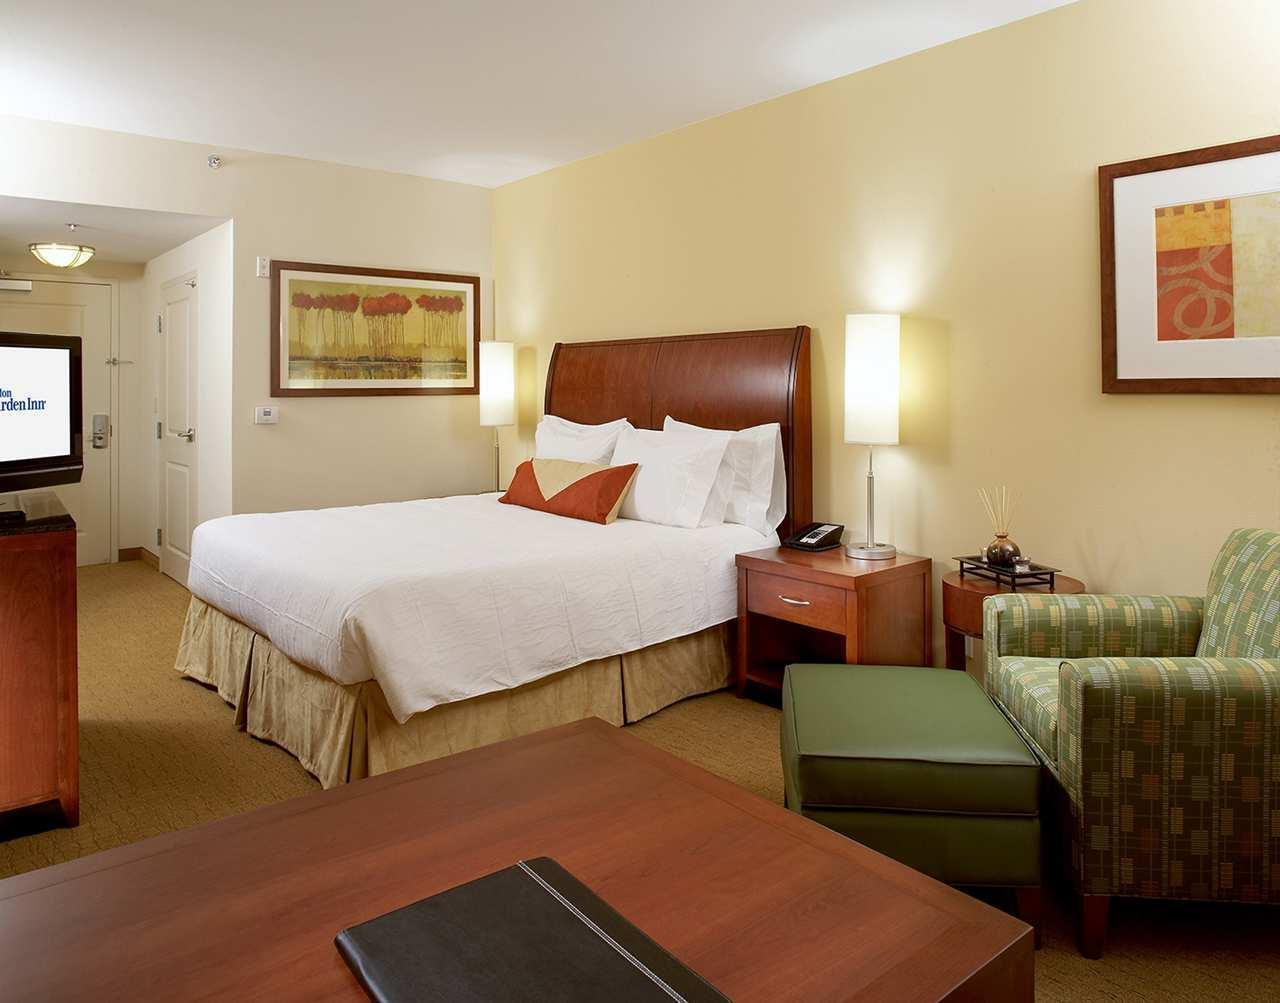 Hilton Garden Inn Dallas/Arlington image 10